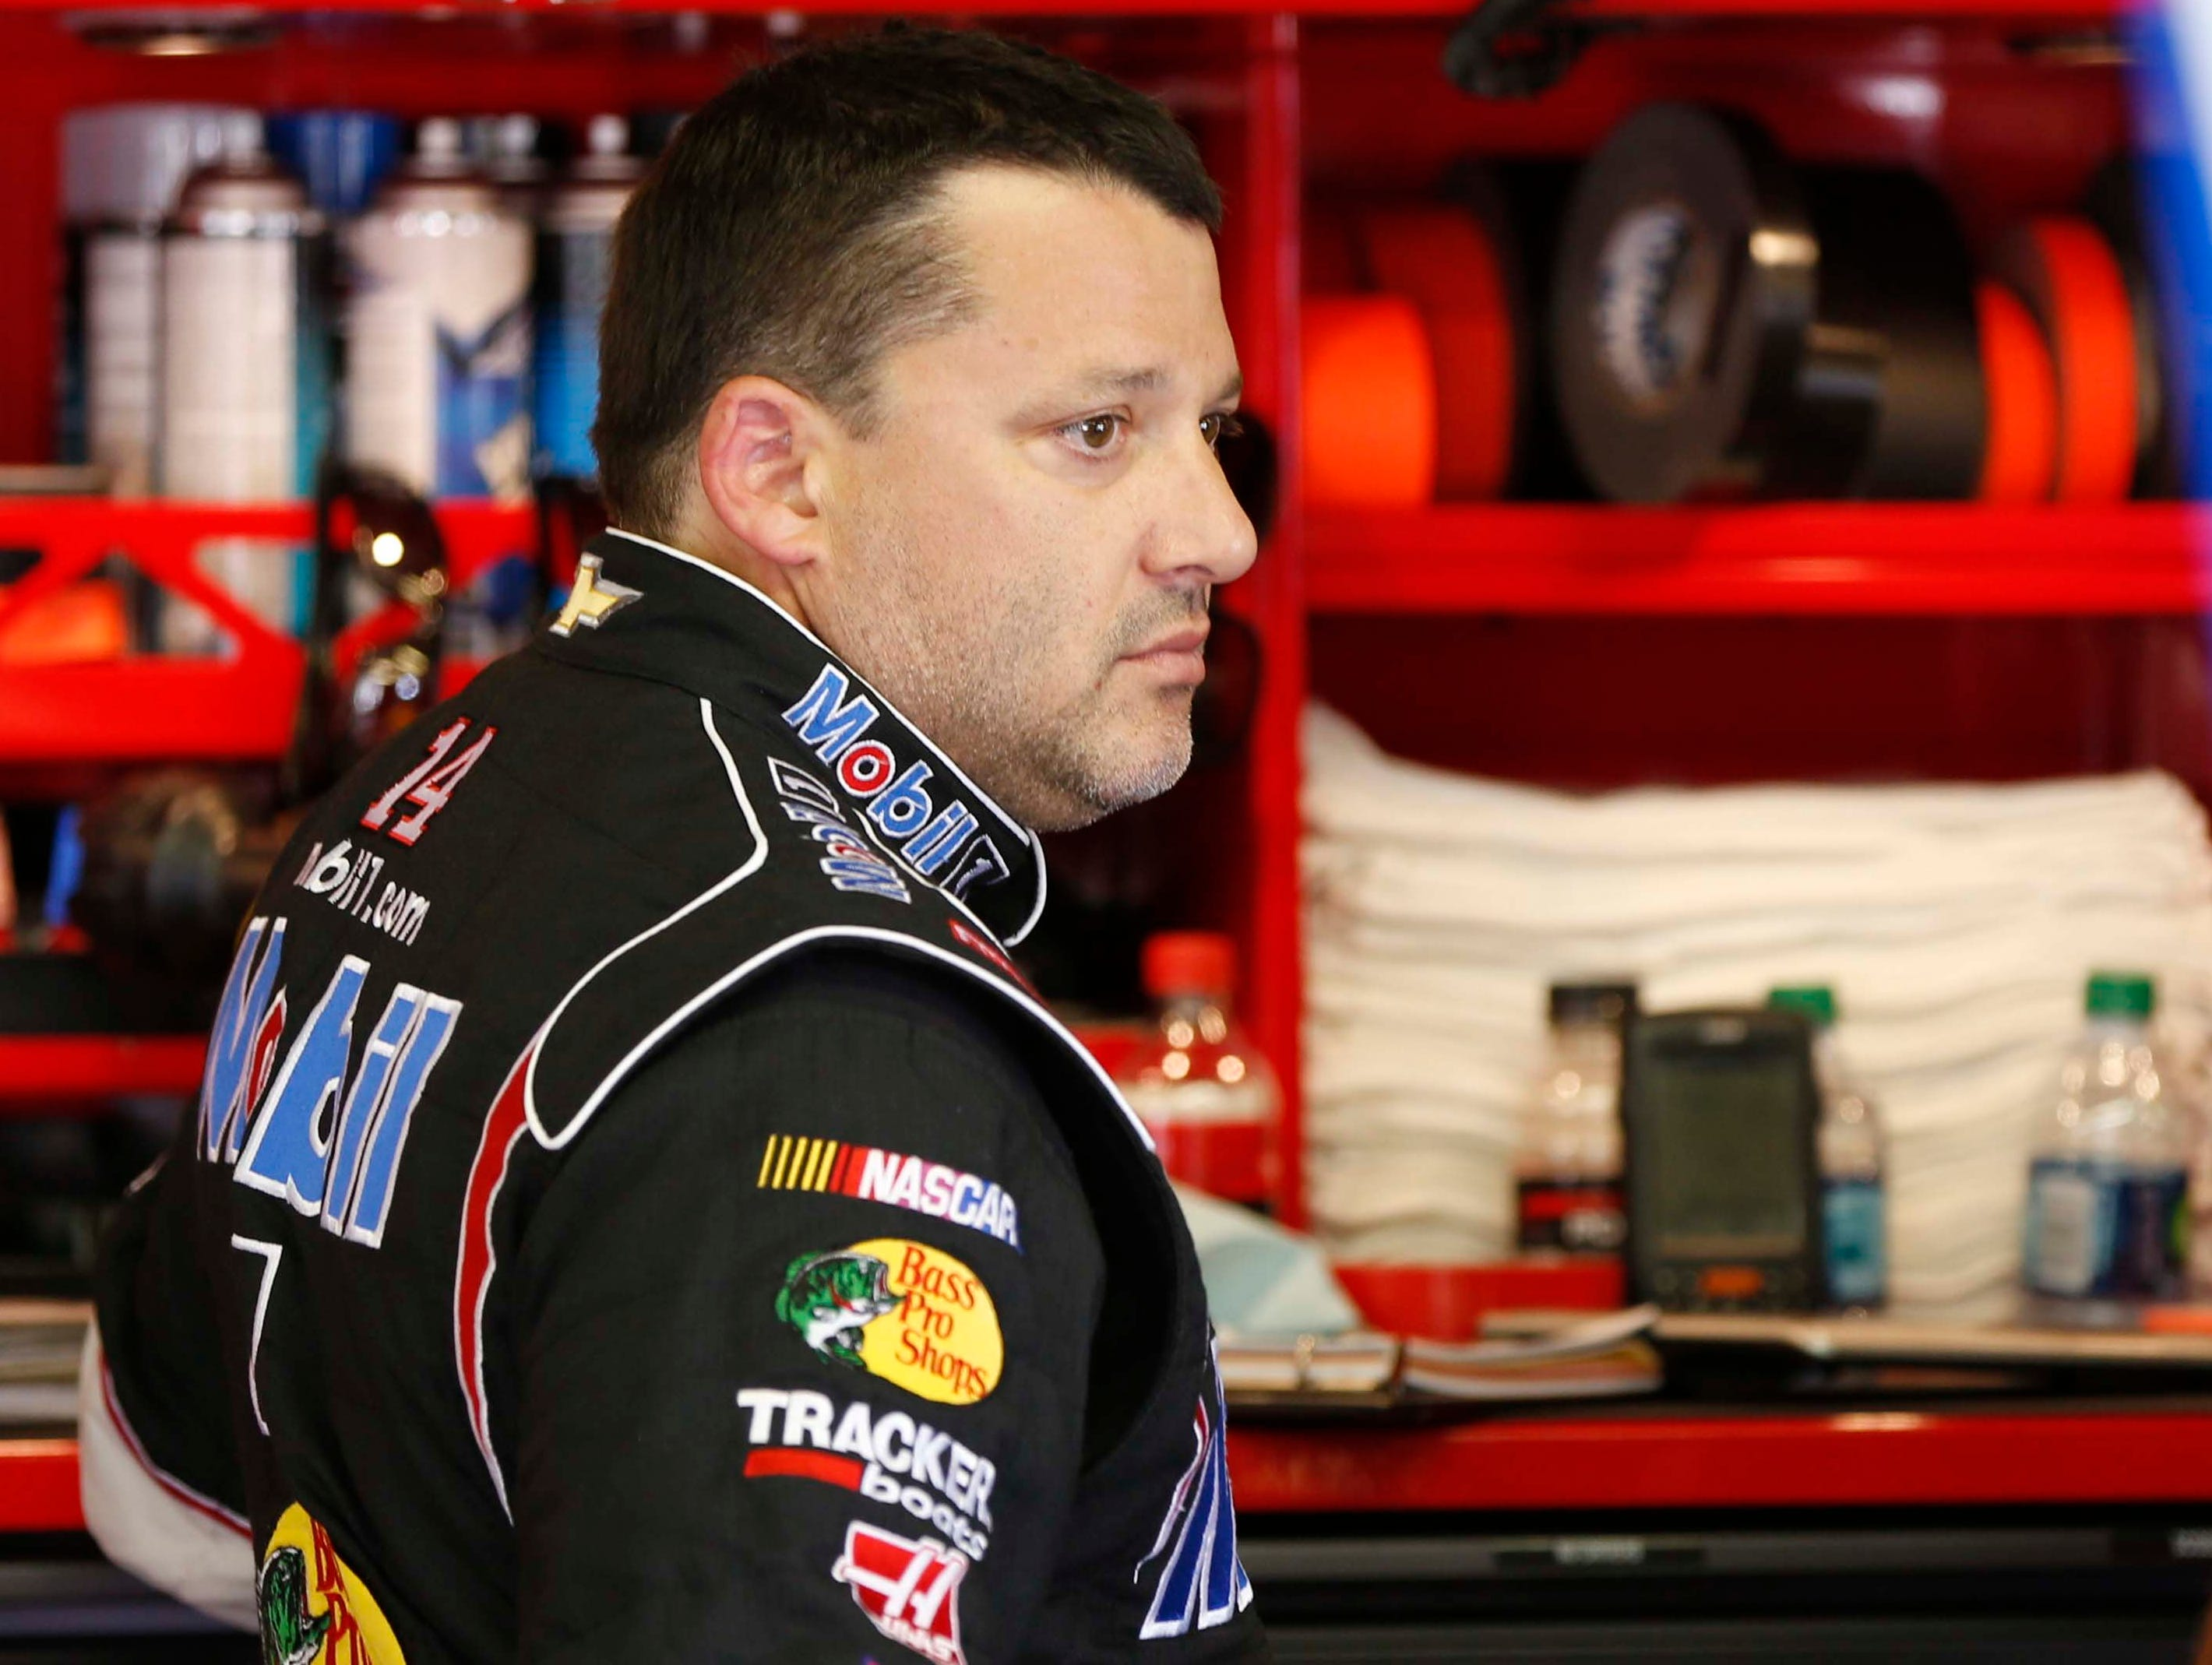 8-7-2013 tony stewart out